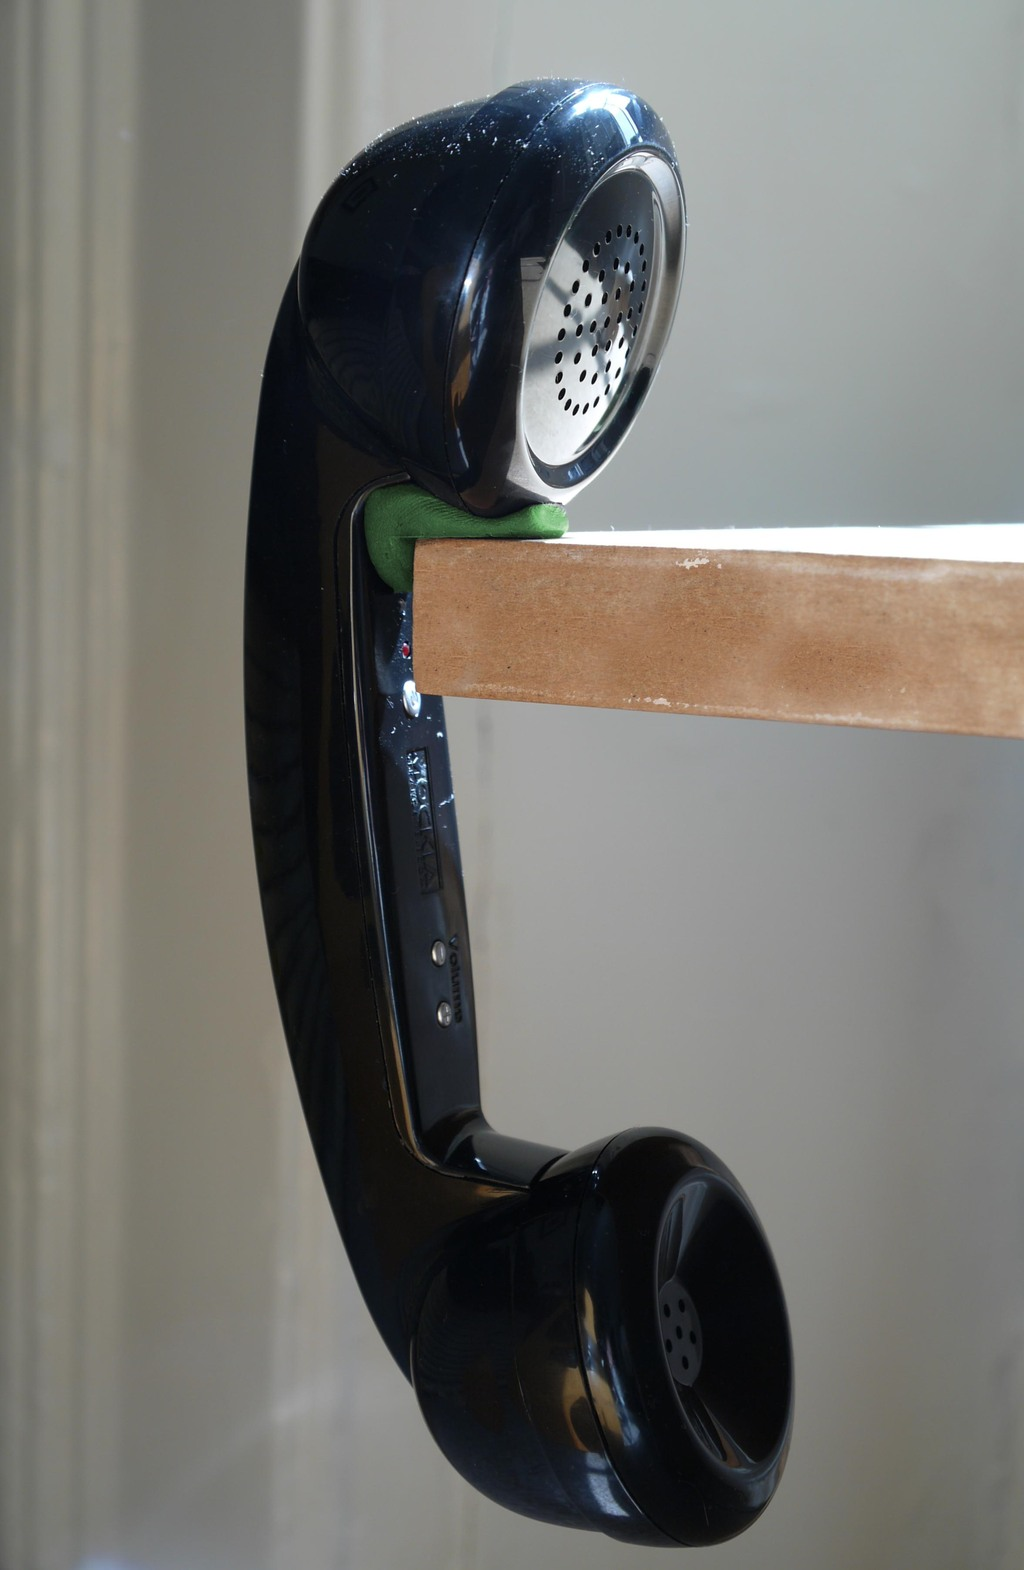 Hang retro internet phones off sugru grips